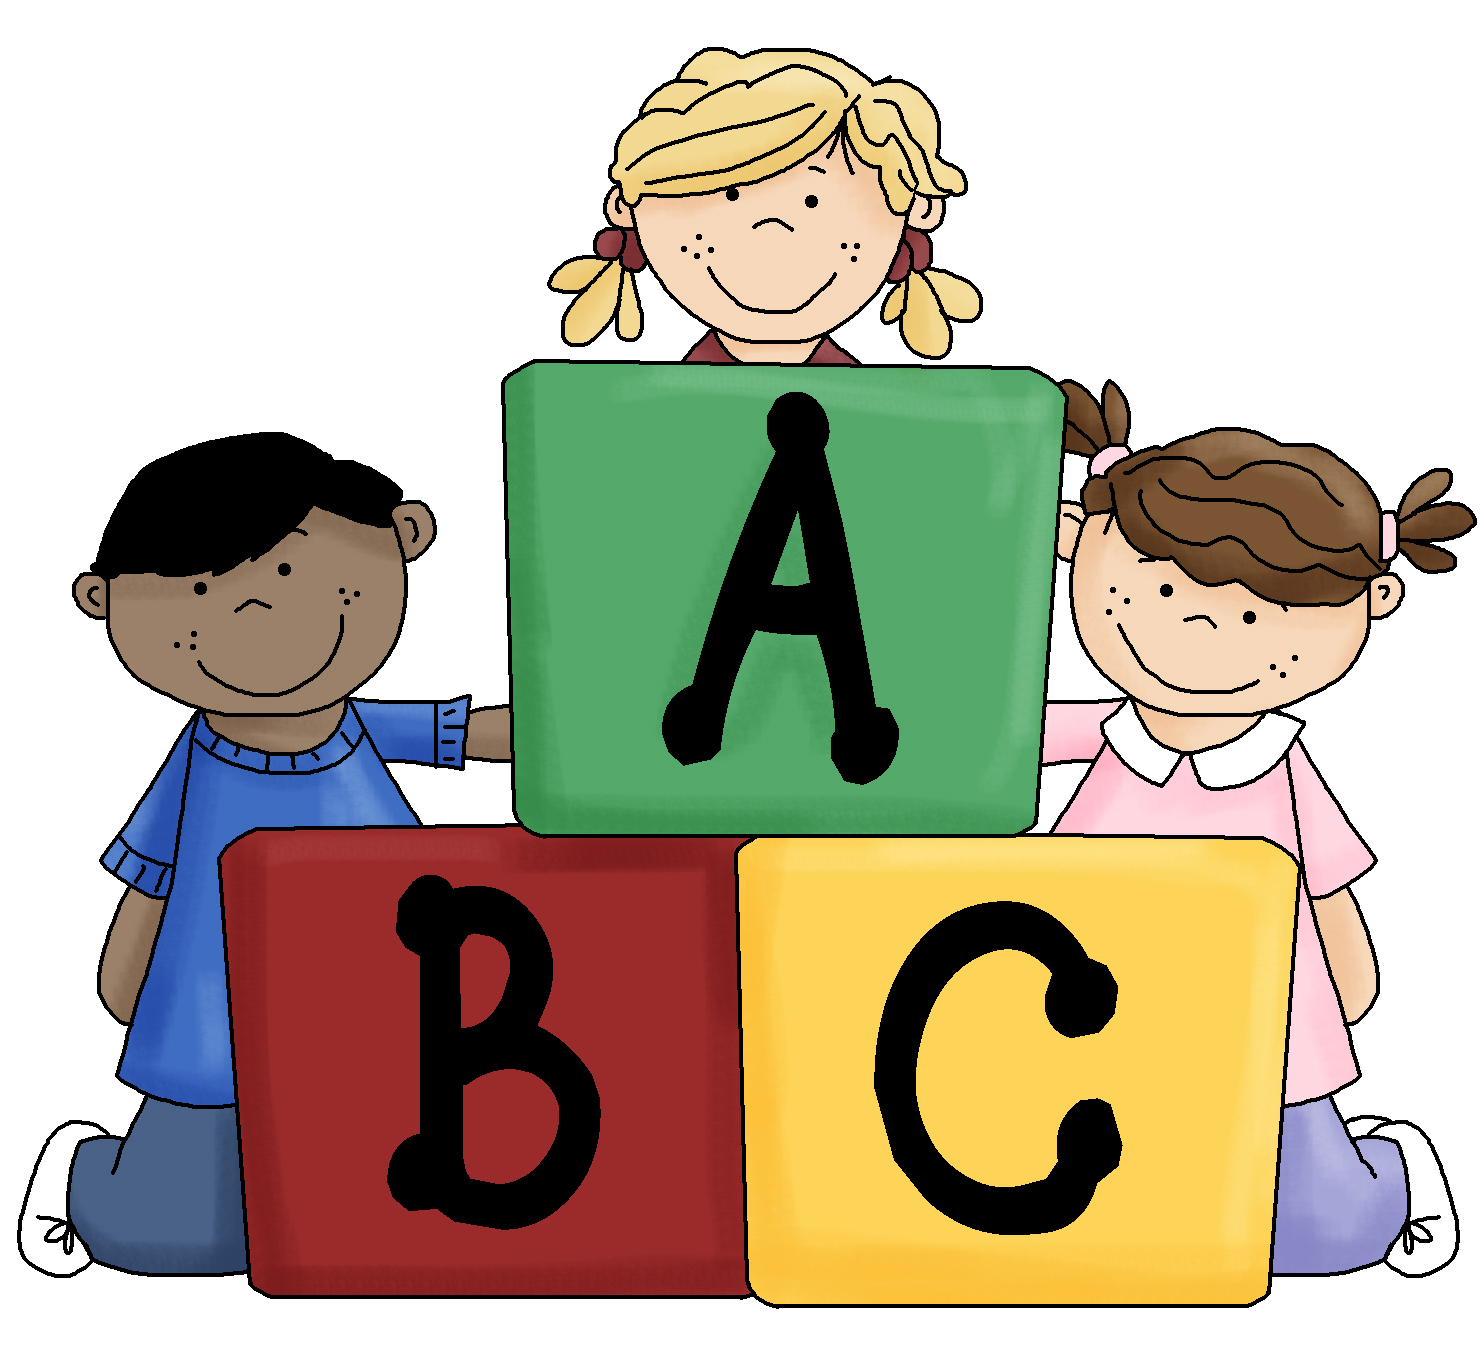 Abc blocks clipart kid